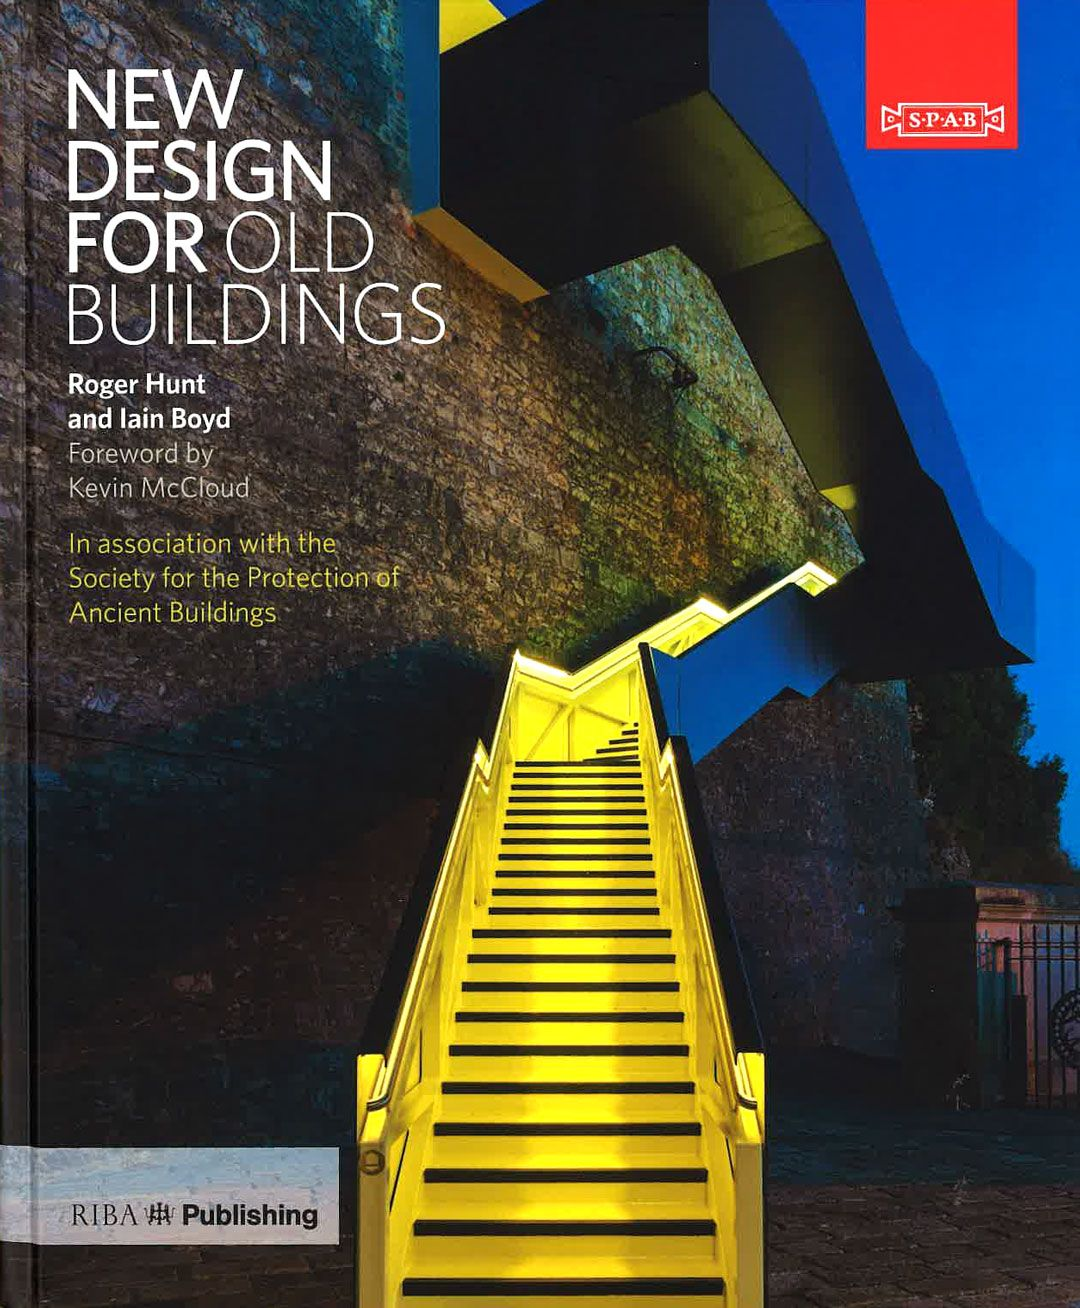 CDA feature in new RIBA publication: new design for old buildings